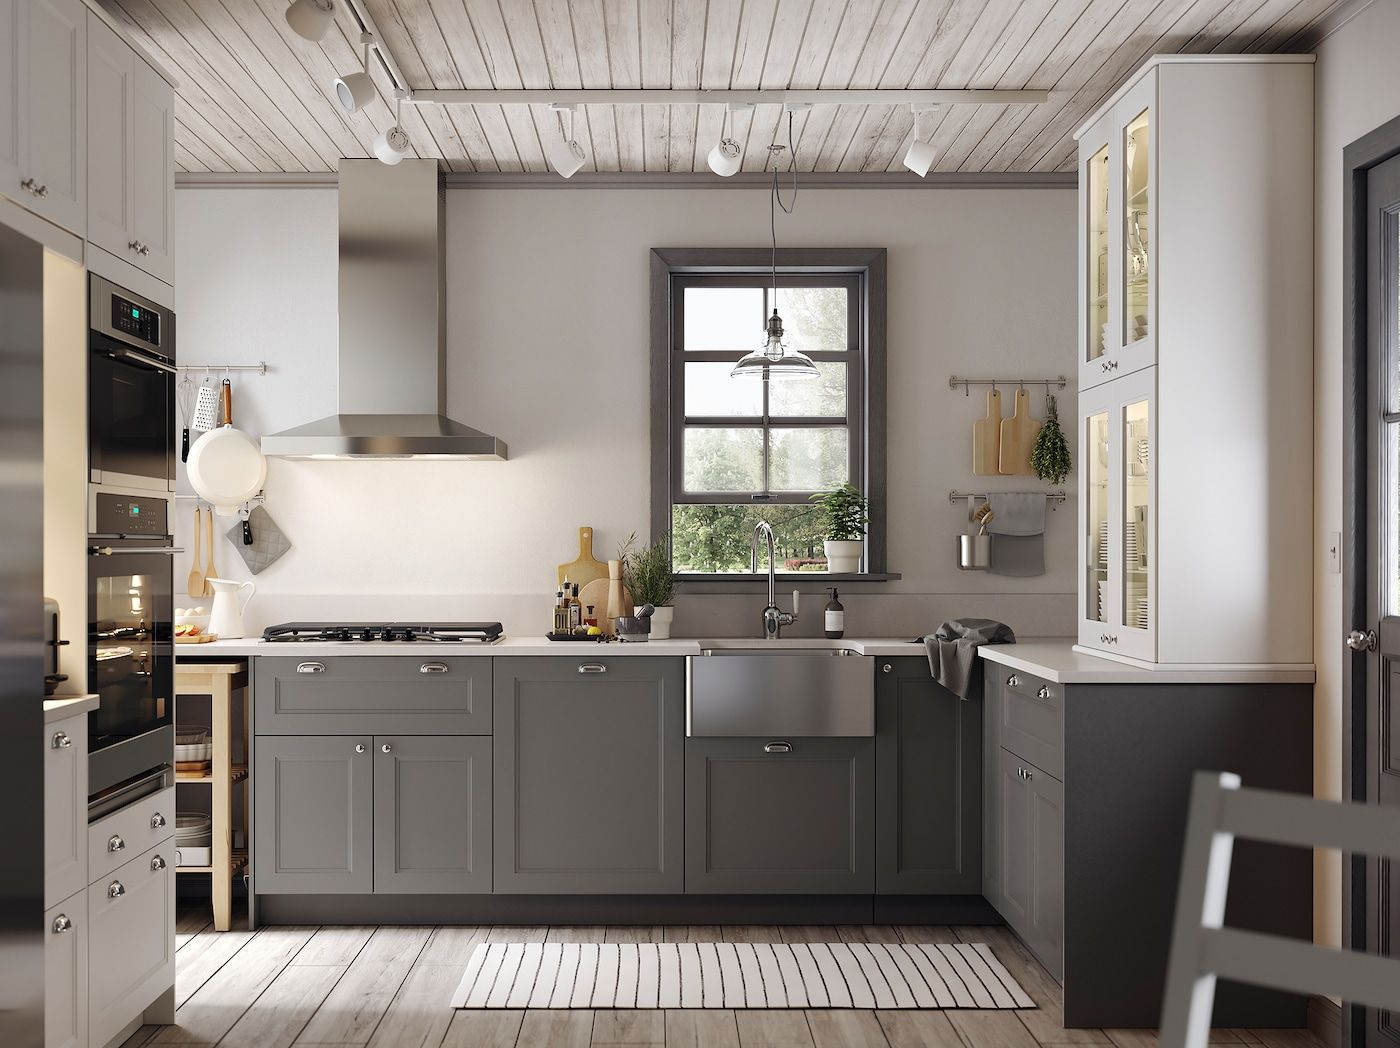 Kitchen dreams that are refreshingly affordable in 2020 ...